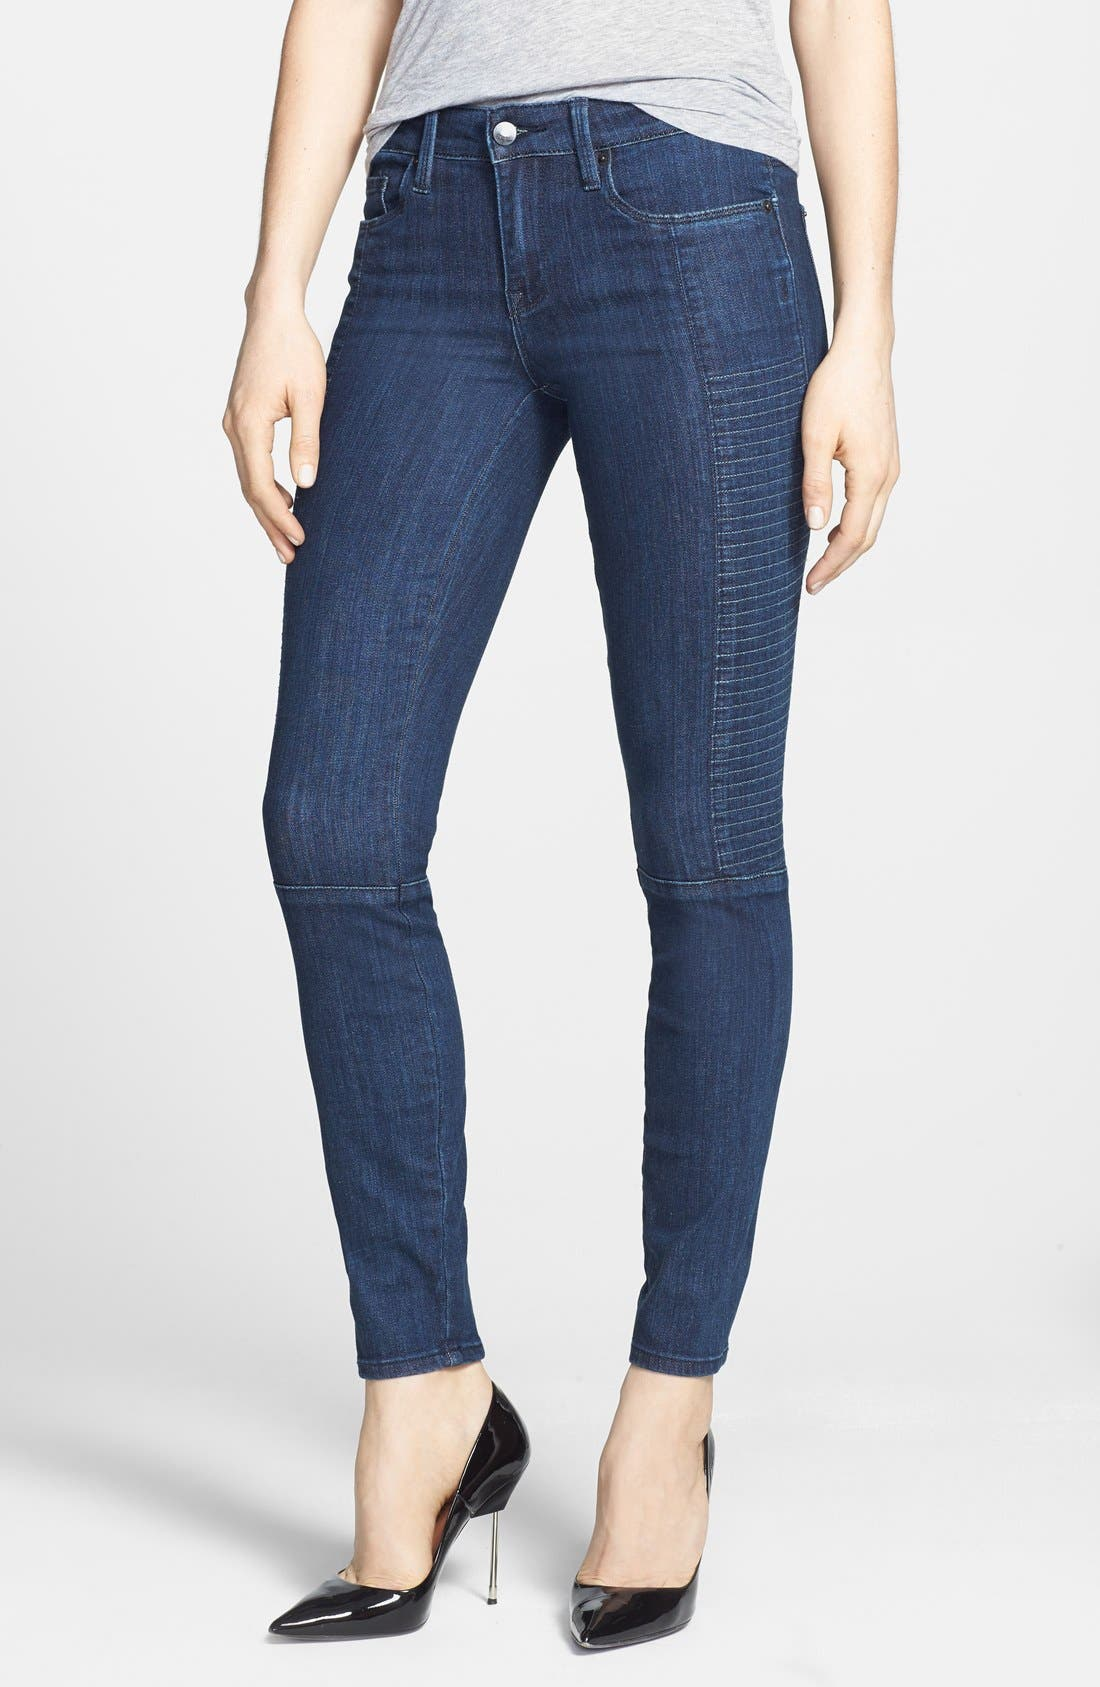 Alternate Image 1 Selected - Genetic 'Soma' Stitch Detail Skinny Jeans (Apex)